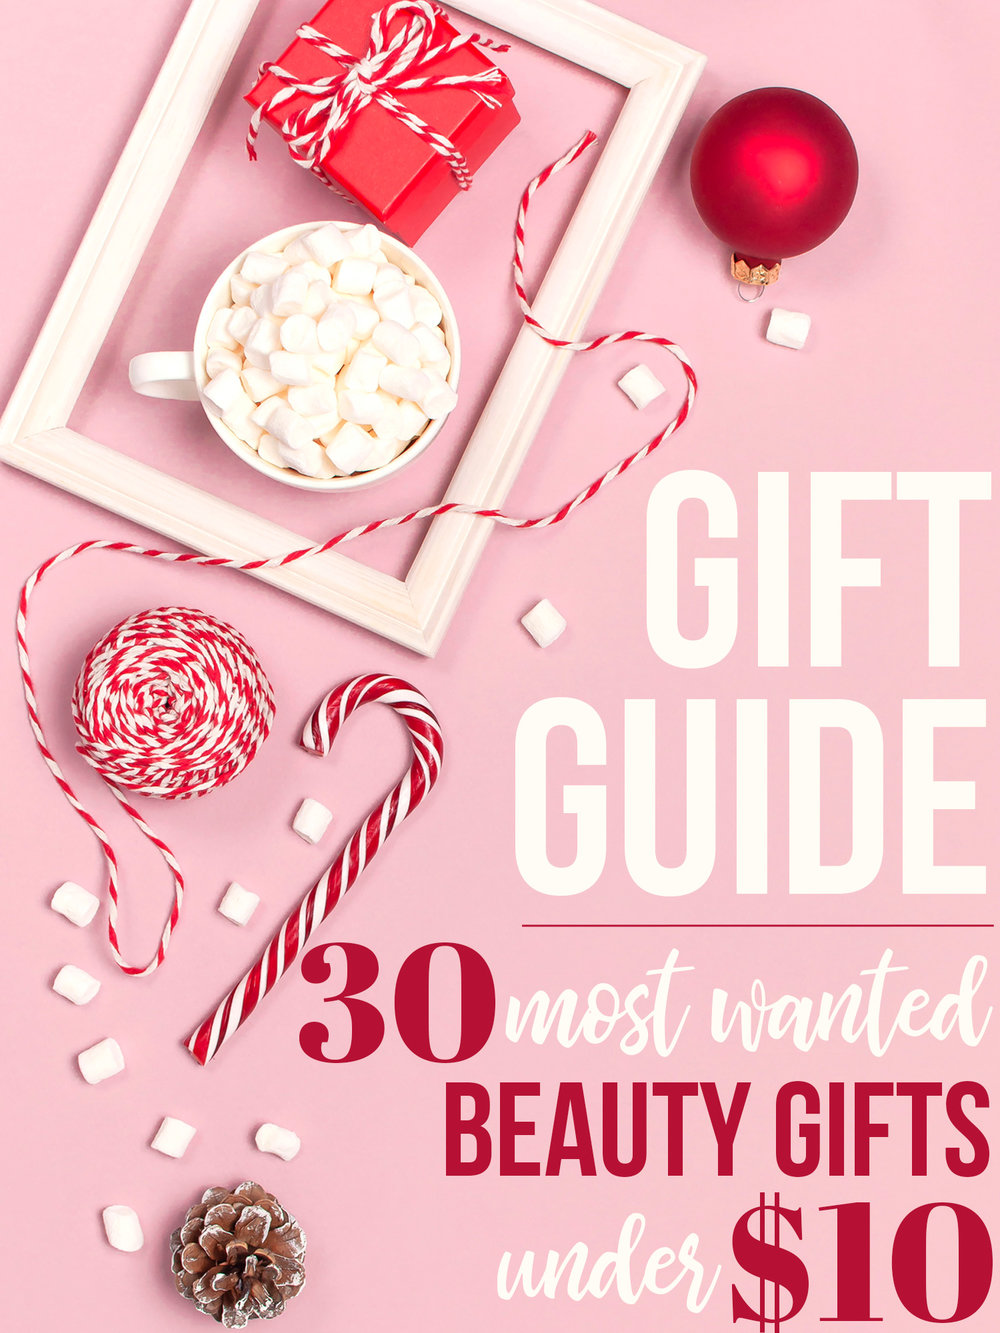 30 Most Wanted Beauty Gifts Under $10